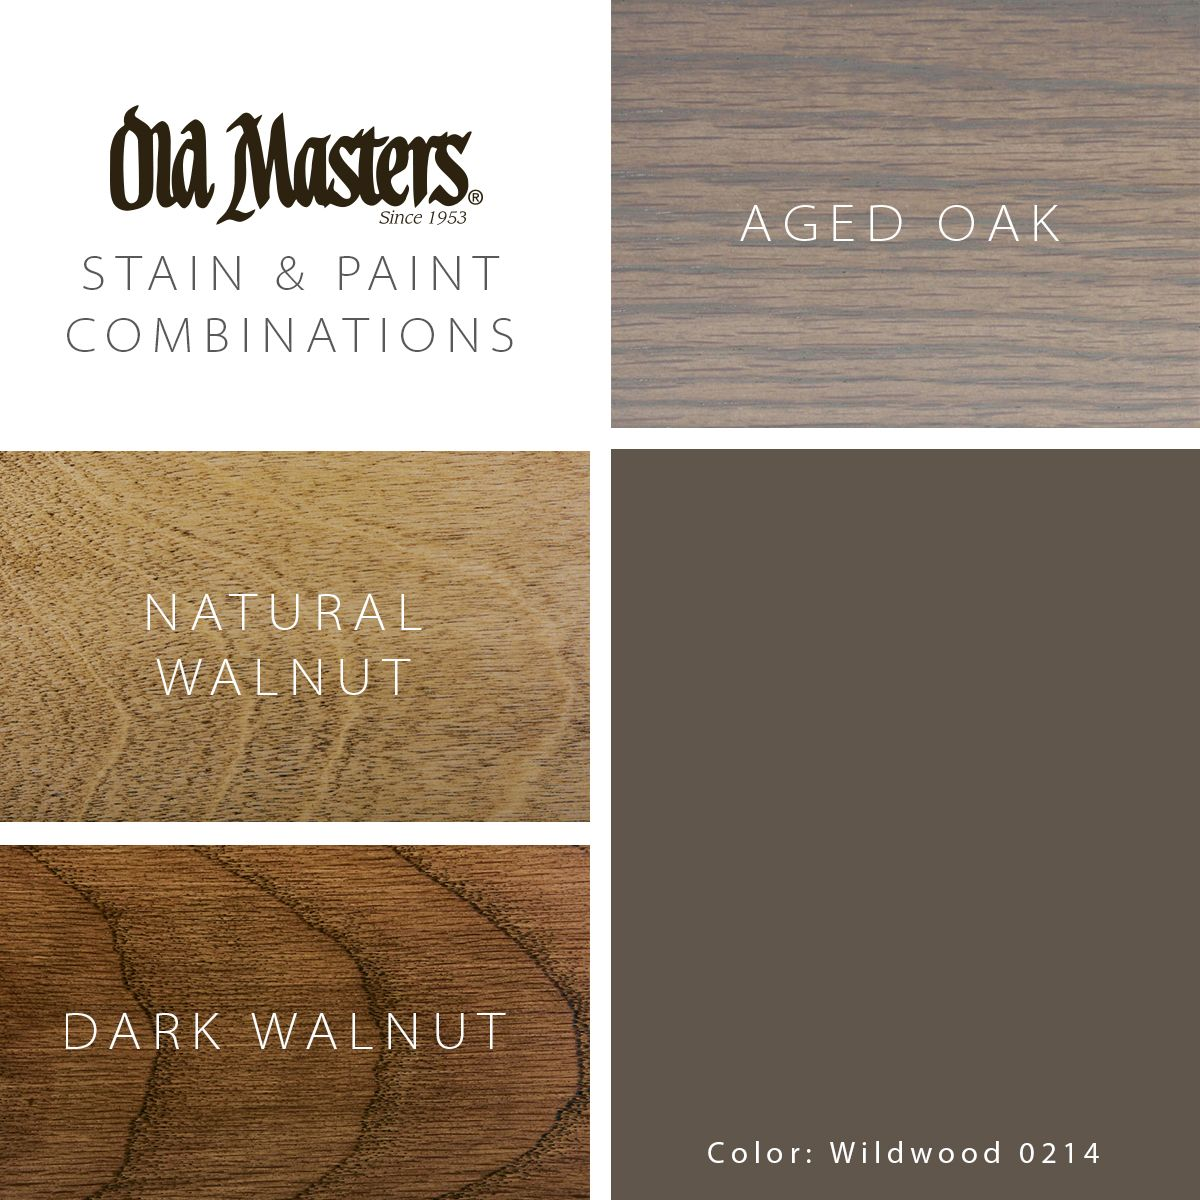 Pairing Stain With Today S Popular Interior Colors Paint Combinations Staining Wood Natural Walnut